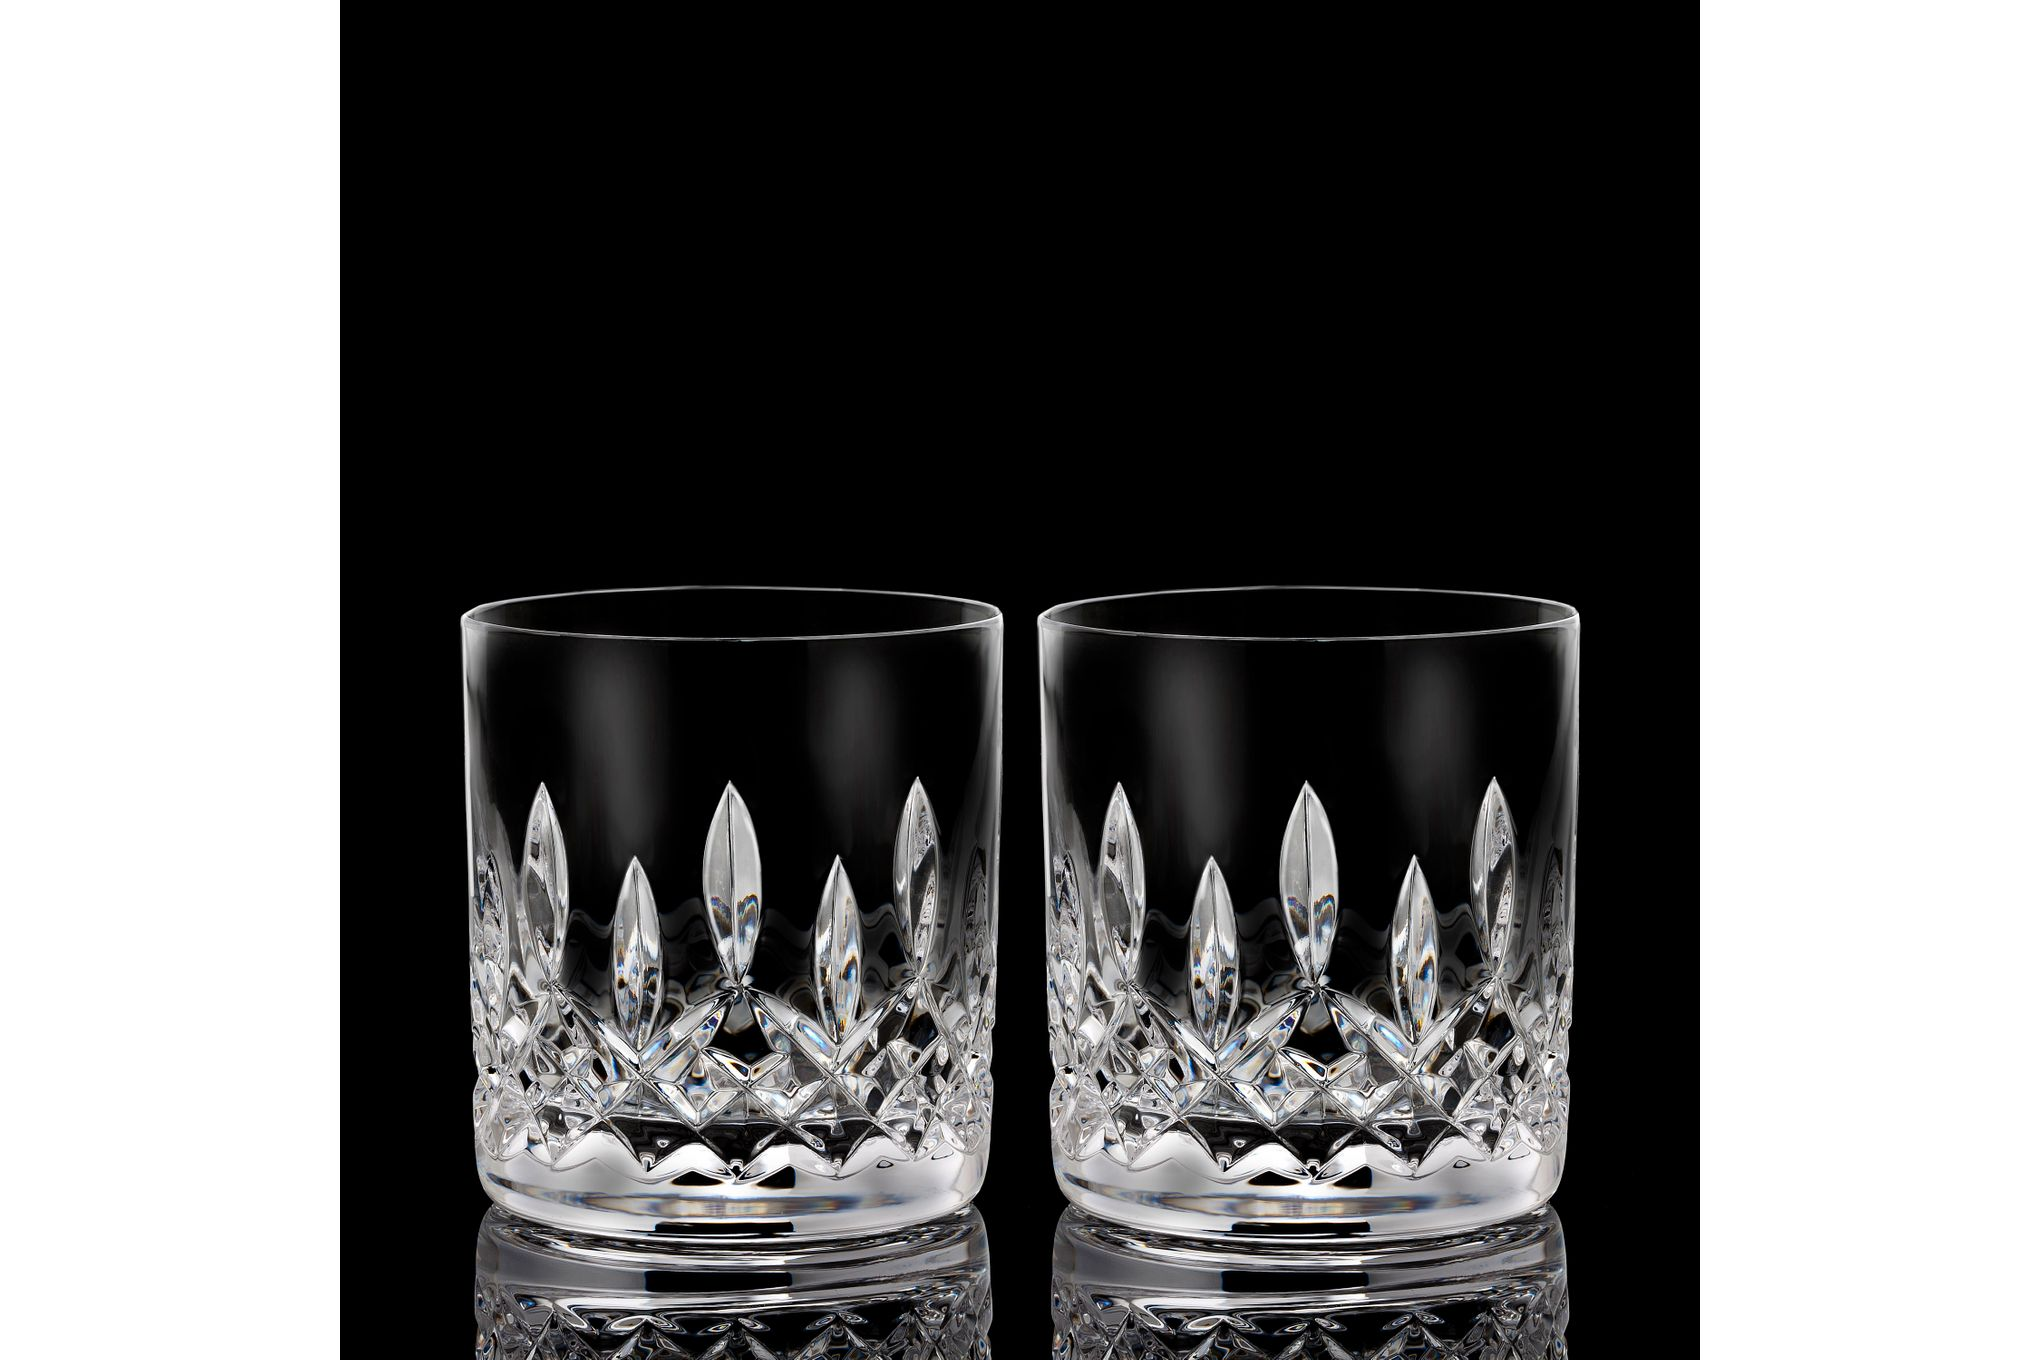 Waterford Lismore Connoisseur Collection Pair of Tumblers 7oz Straight thumb 2